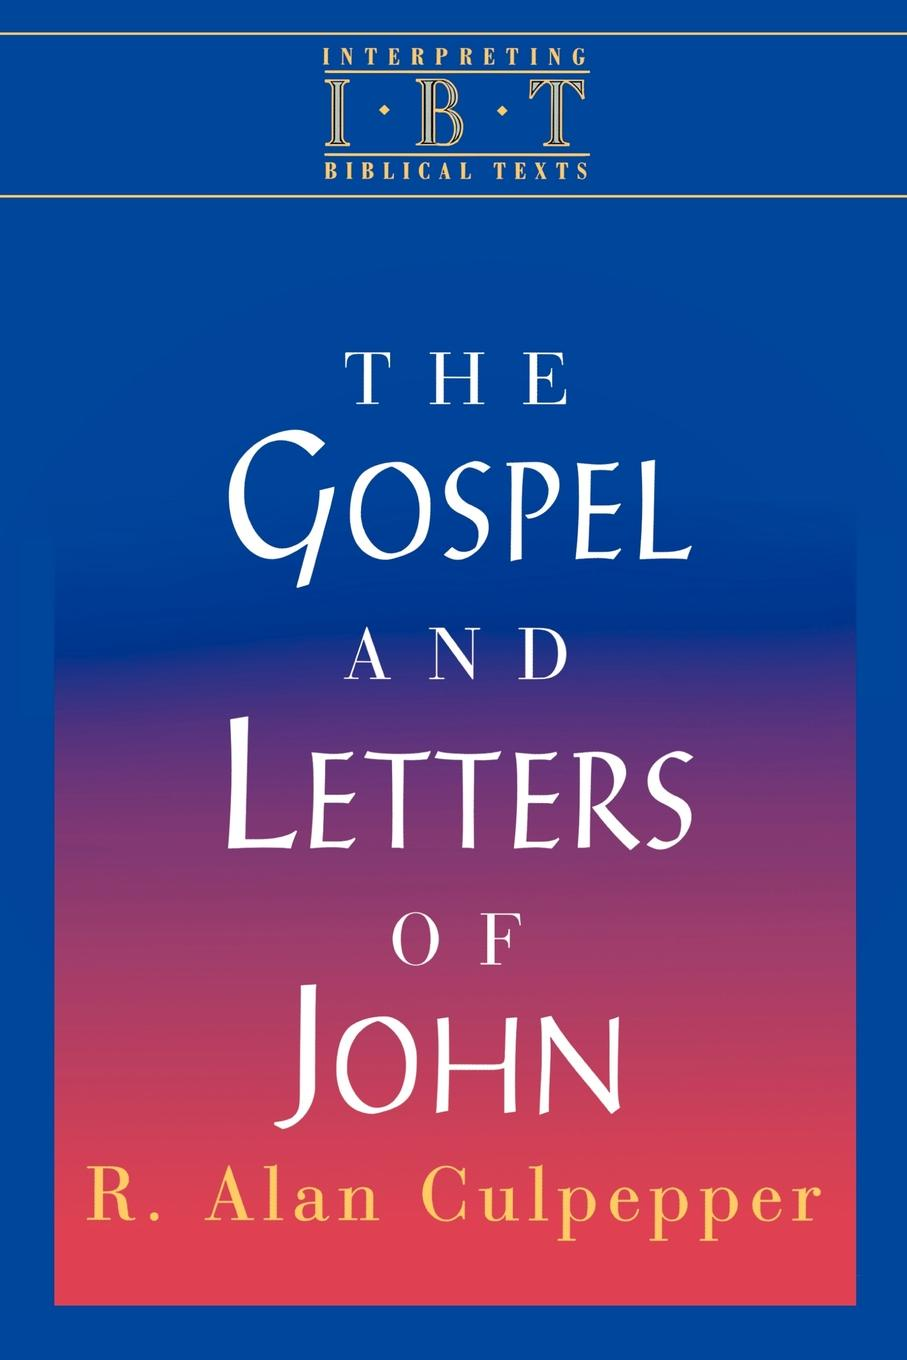 R. Alan Culpepper Interpreting Biblical Texts Series - The Gospel and Letters of John